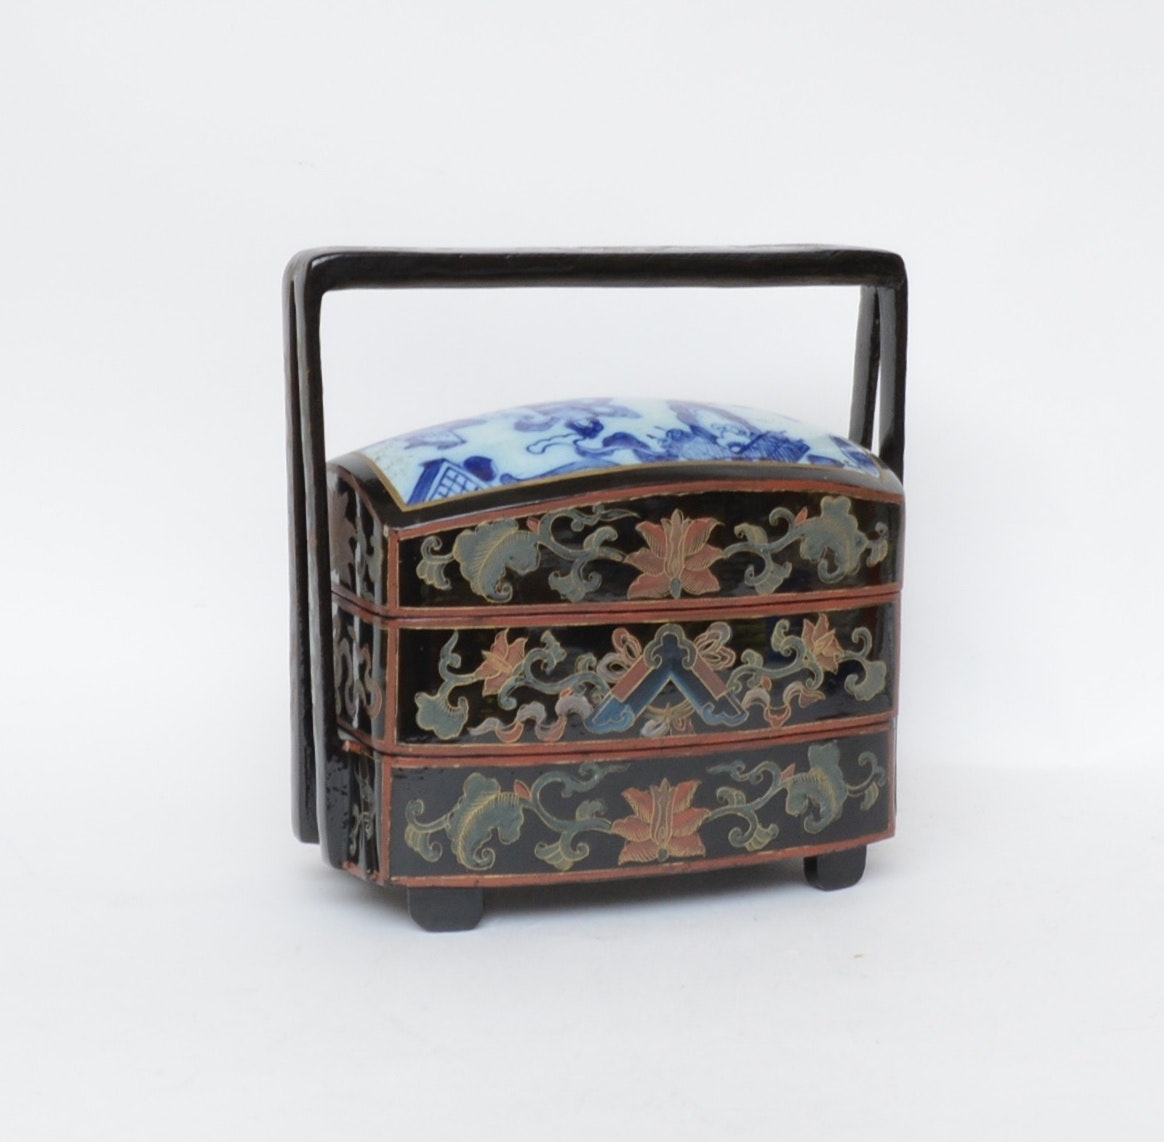 Chinese Hand-Painted and Lacquered Tiered Box